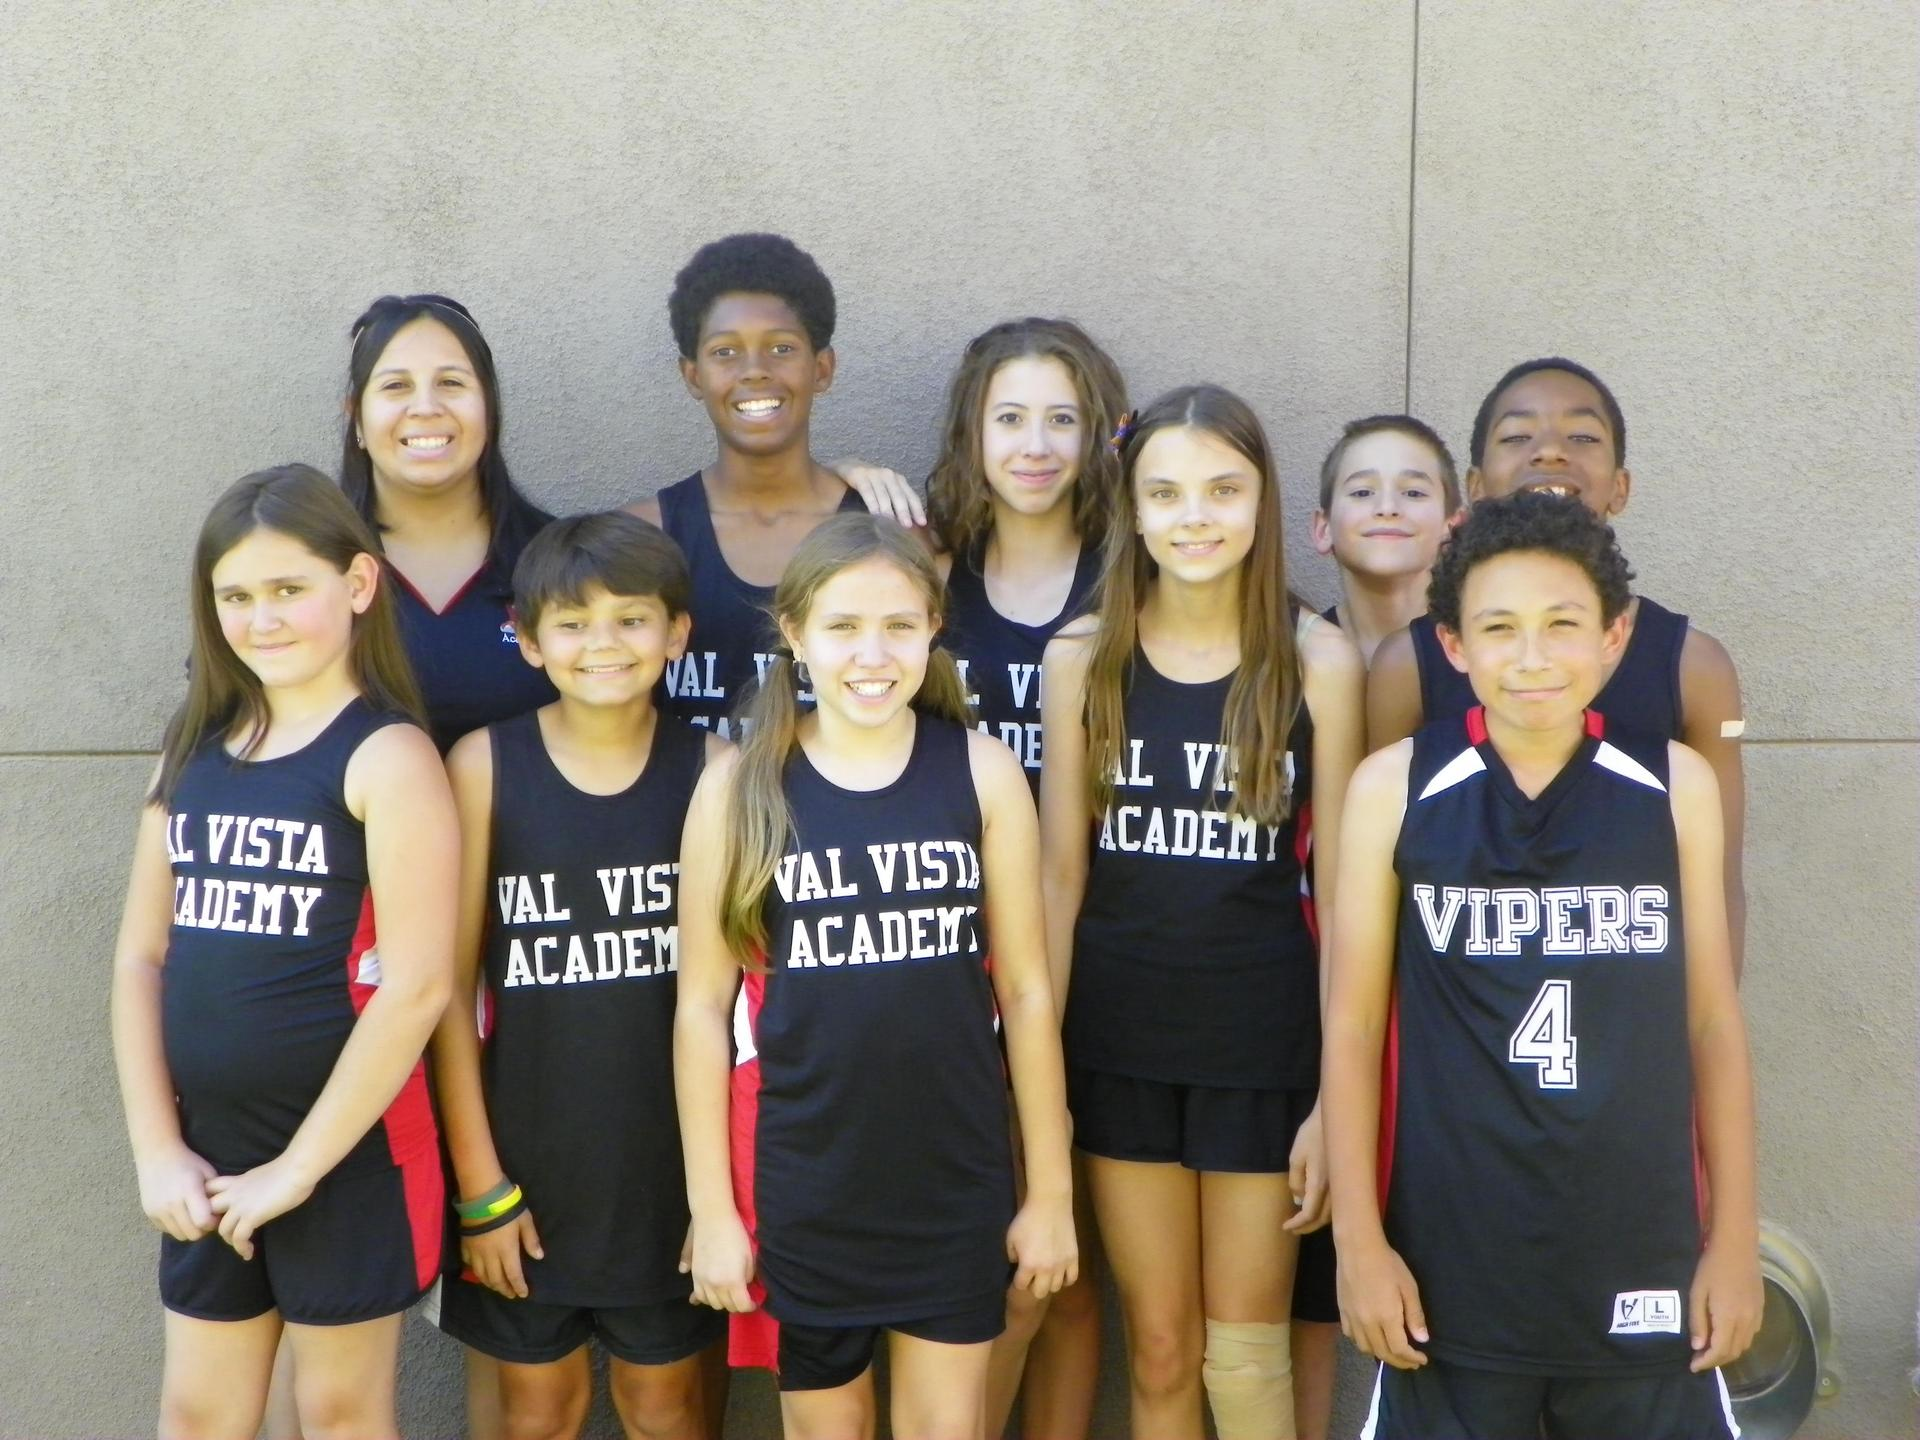 2017 Vipers Cross Country